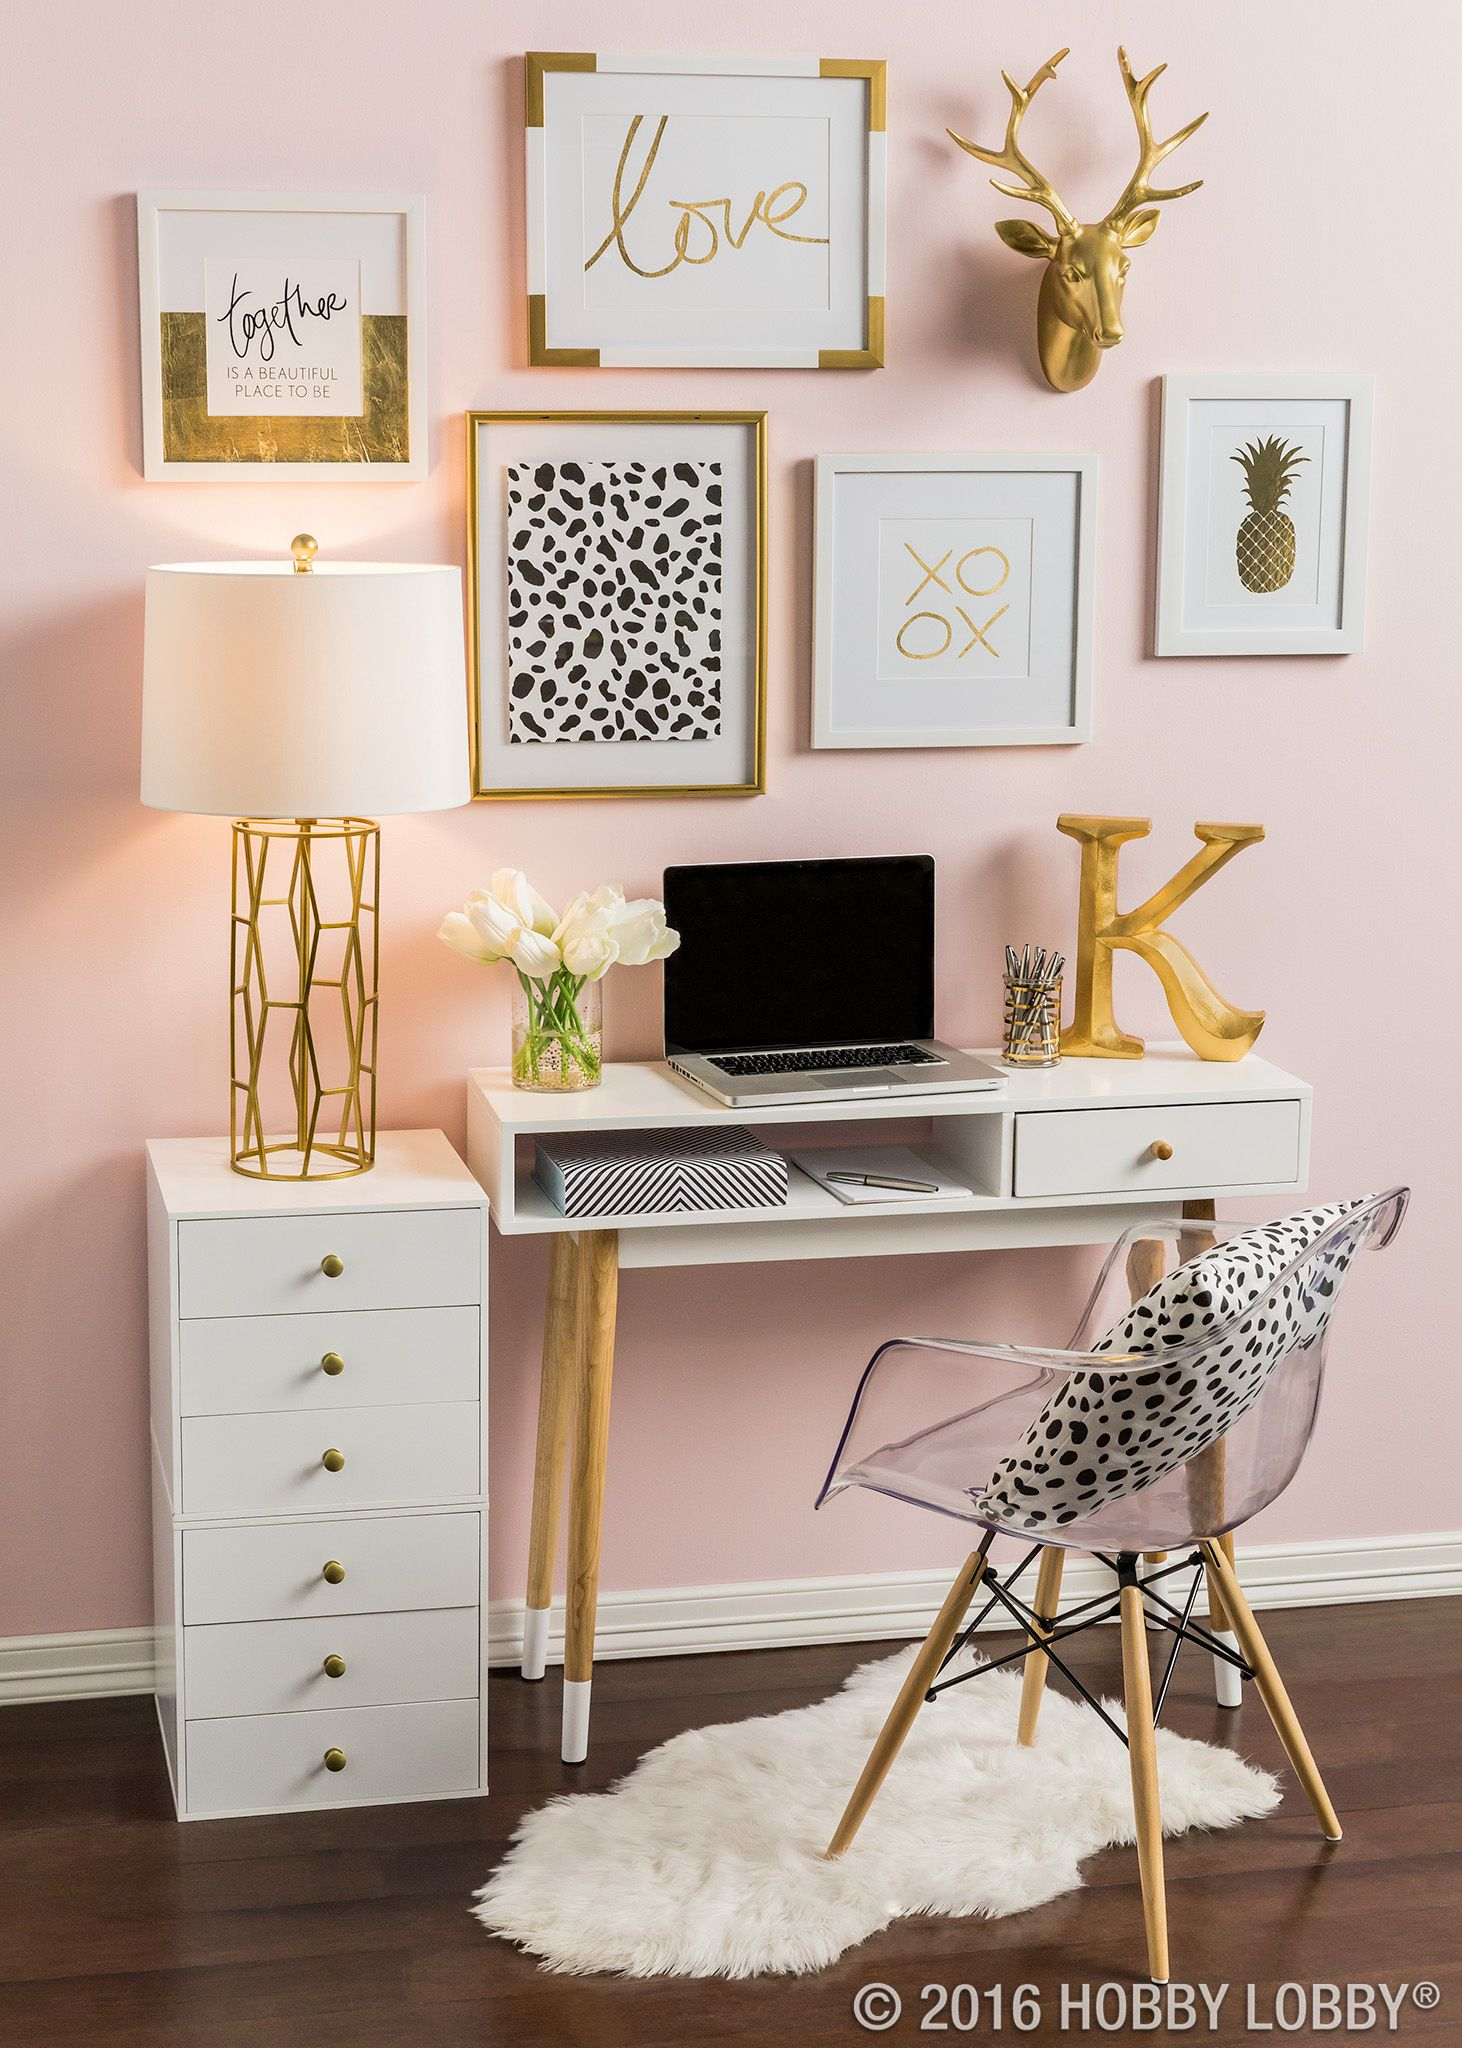 gold feminine girl supplies hers modern images inspiring macys kate fascinating spade ideas desk desktop office accessories